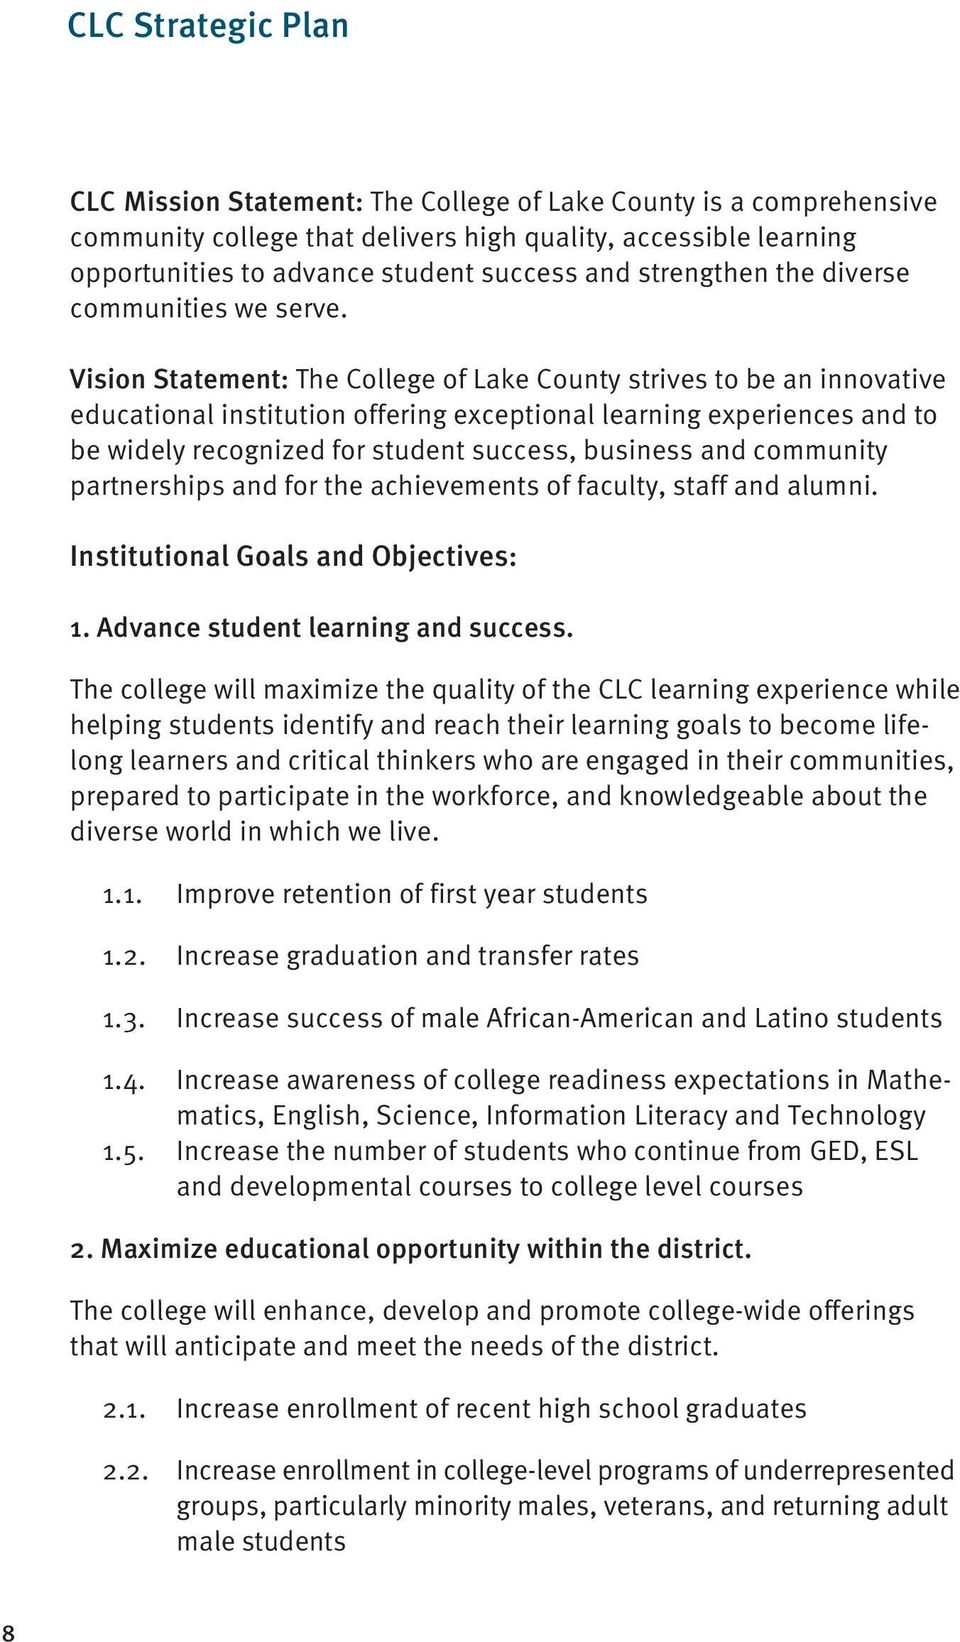 Vision Statement: The College of Lake County strives to be an innovative educational institution offering exceptional learning experiences and to be widely recognized for student success, business